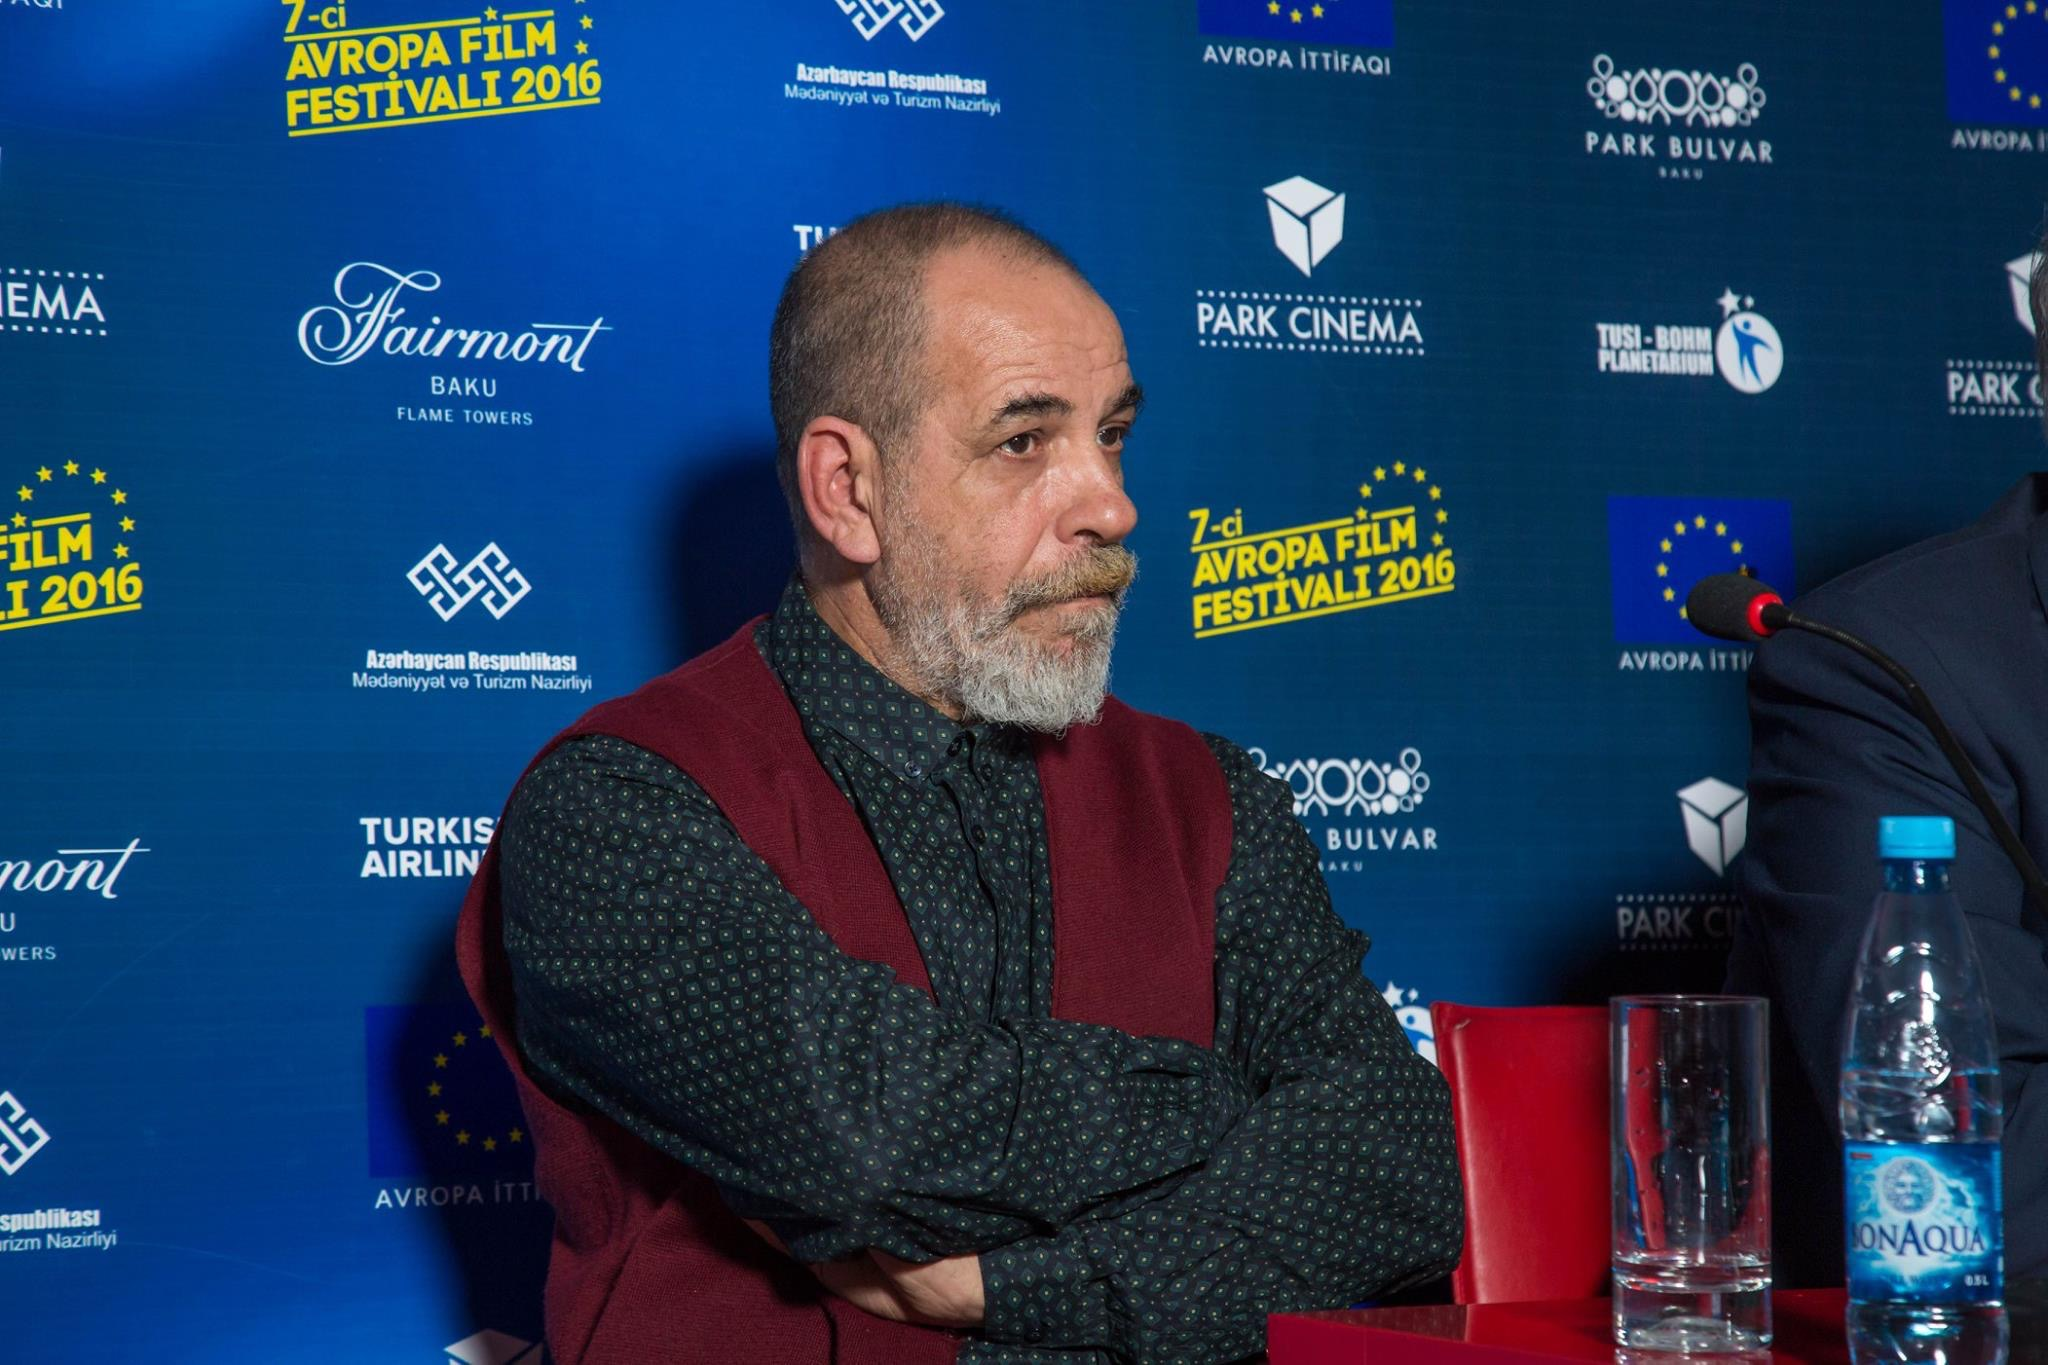 Opening of 7th European Film Festival 2016